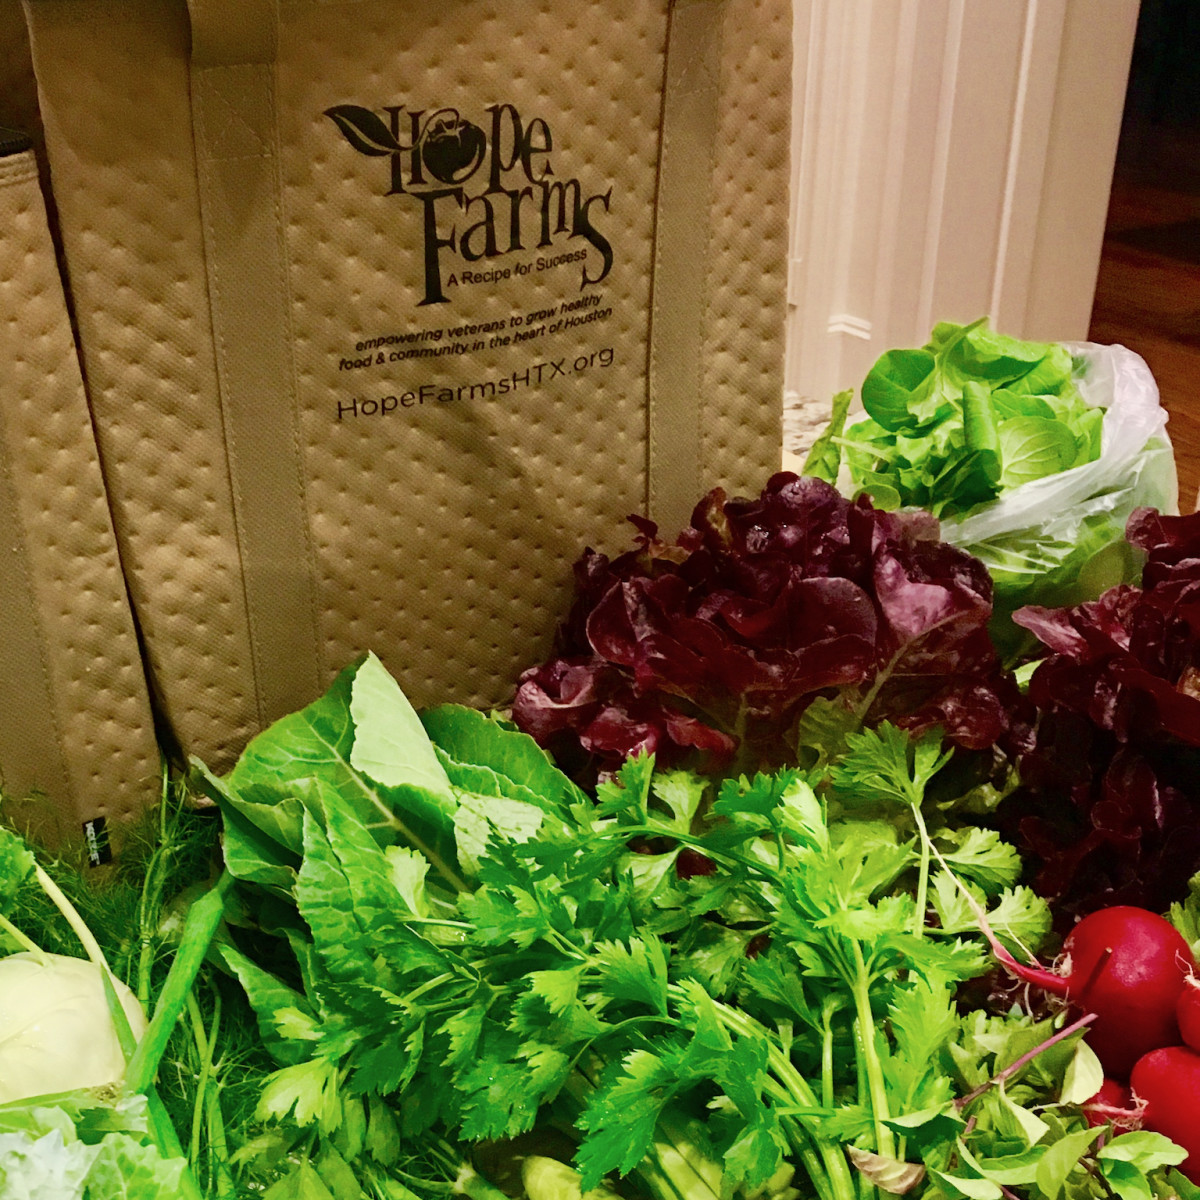 Hope Farms Farm Share bags